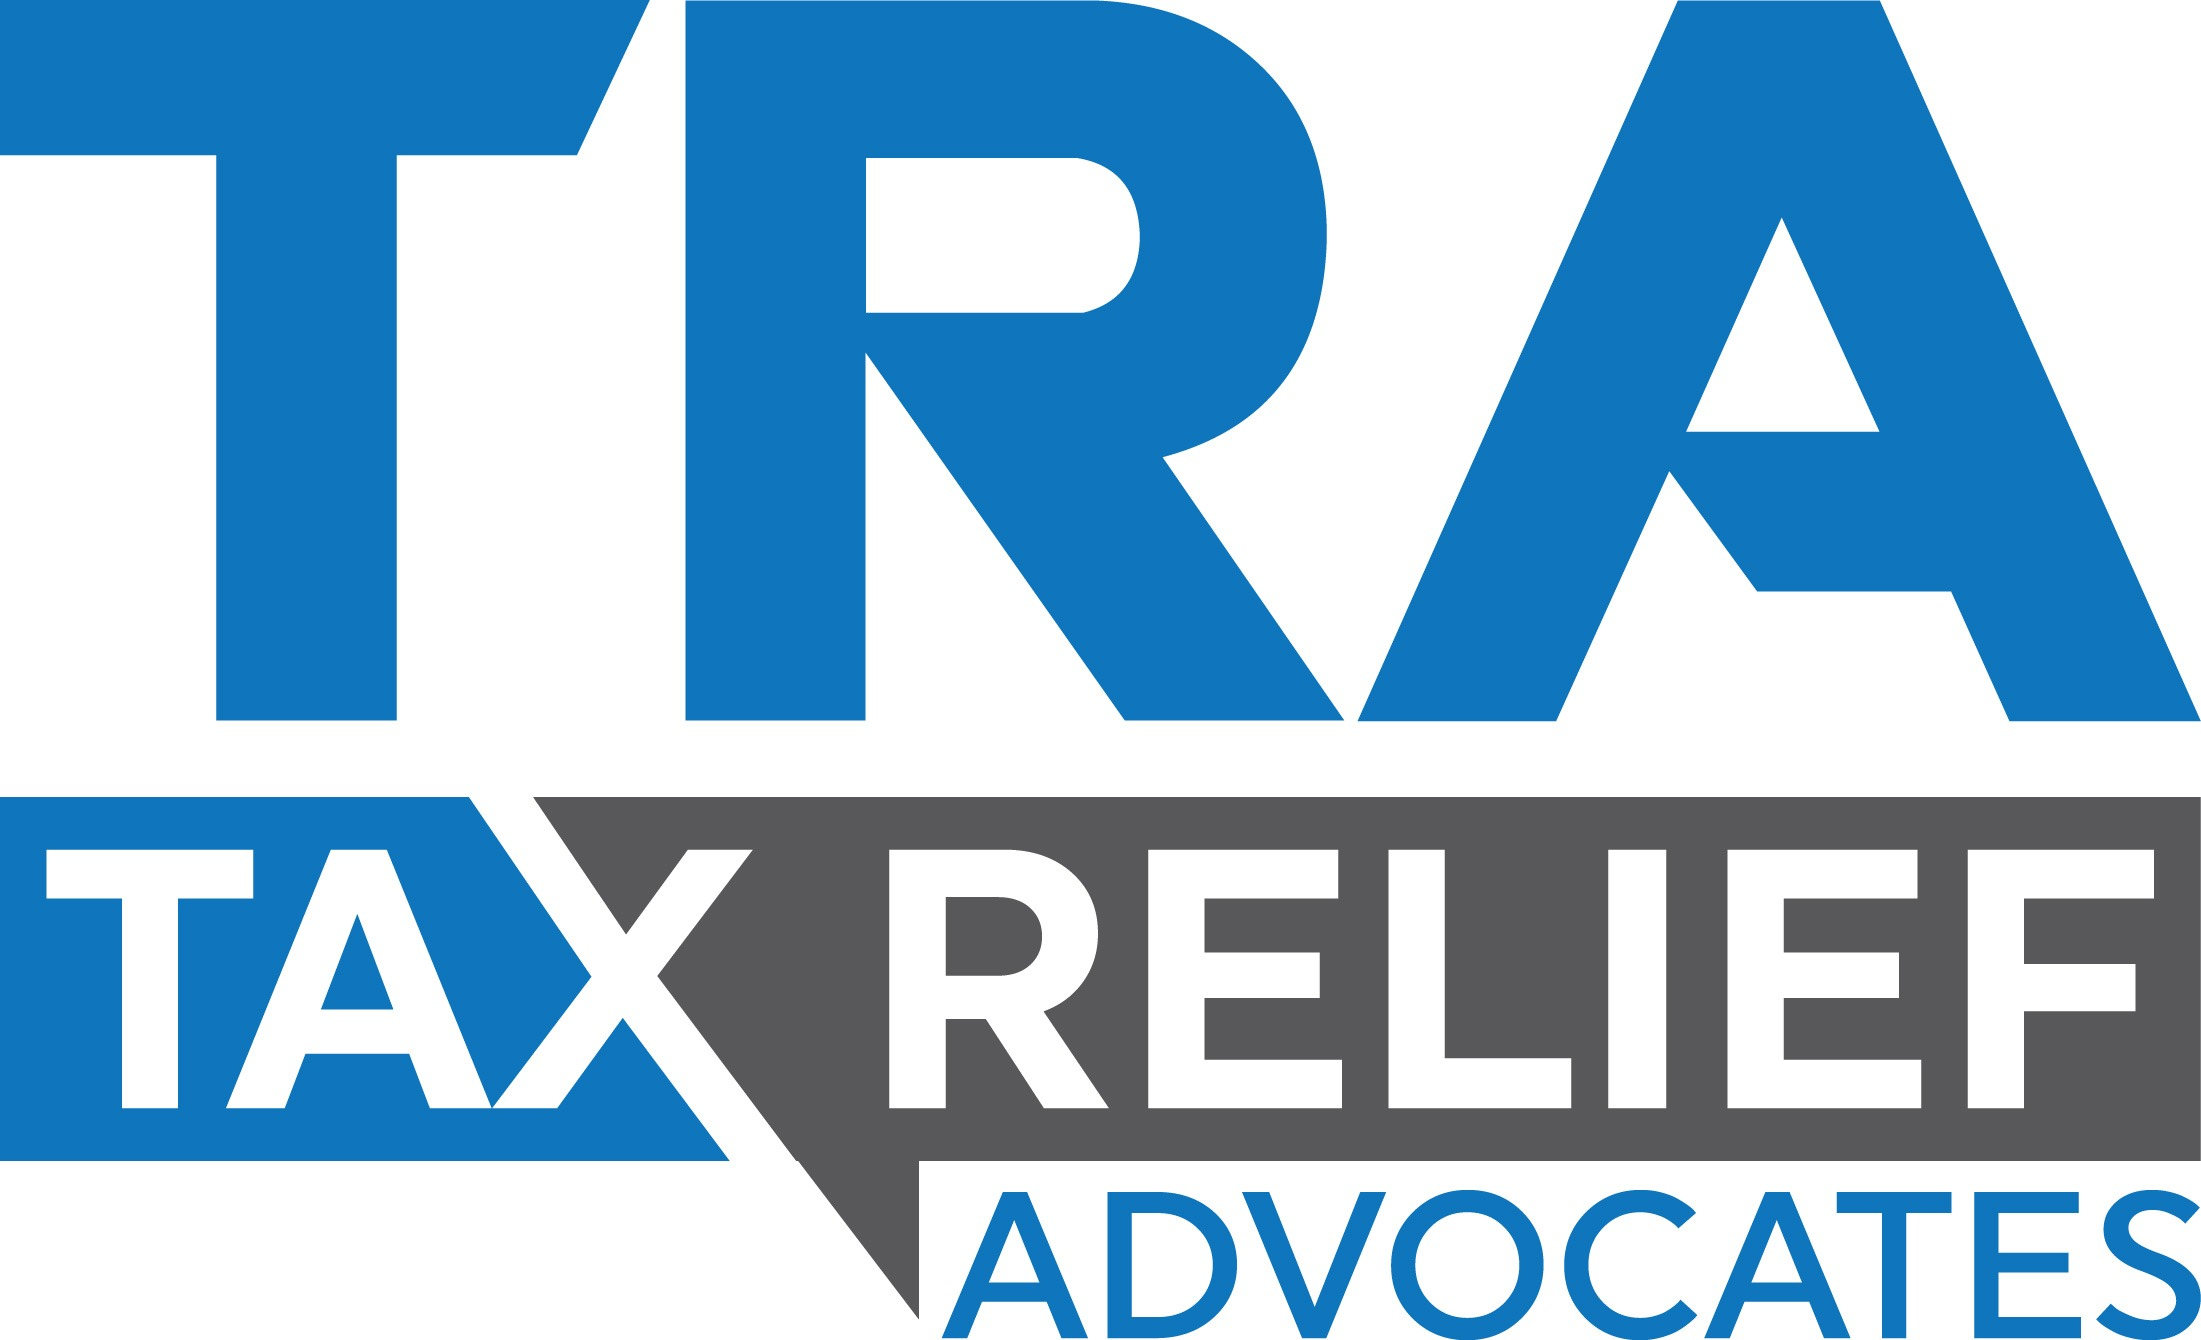 Income Tax Relief Garland TX